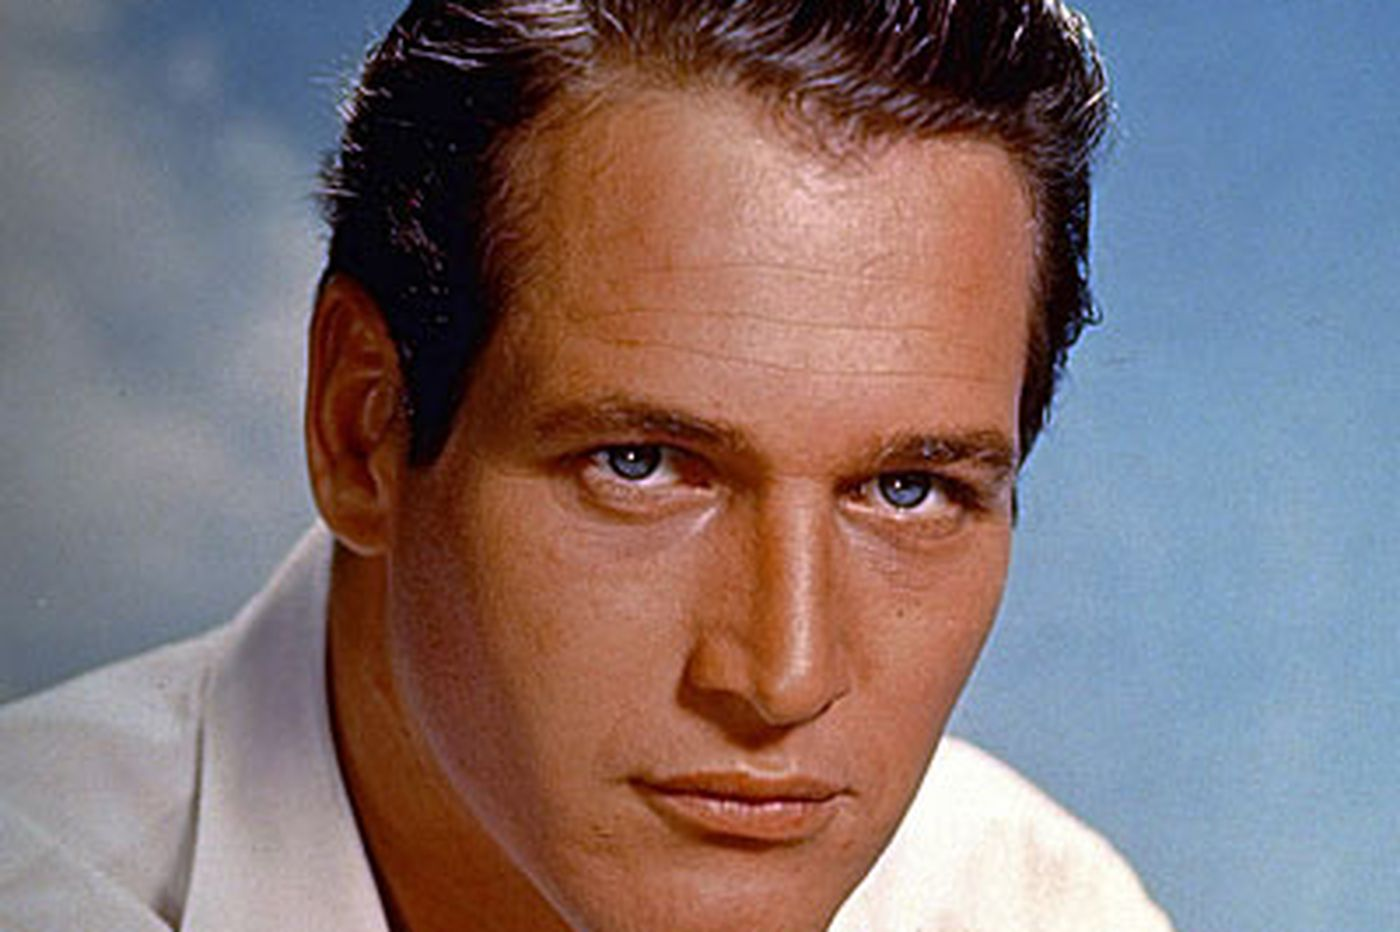 Paul Newman, 83, the Hollywood icon with the famous blue eyes